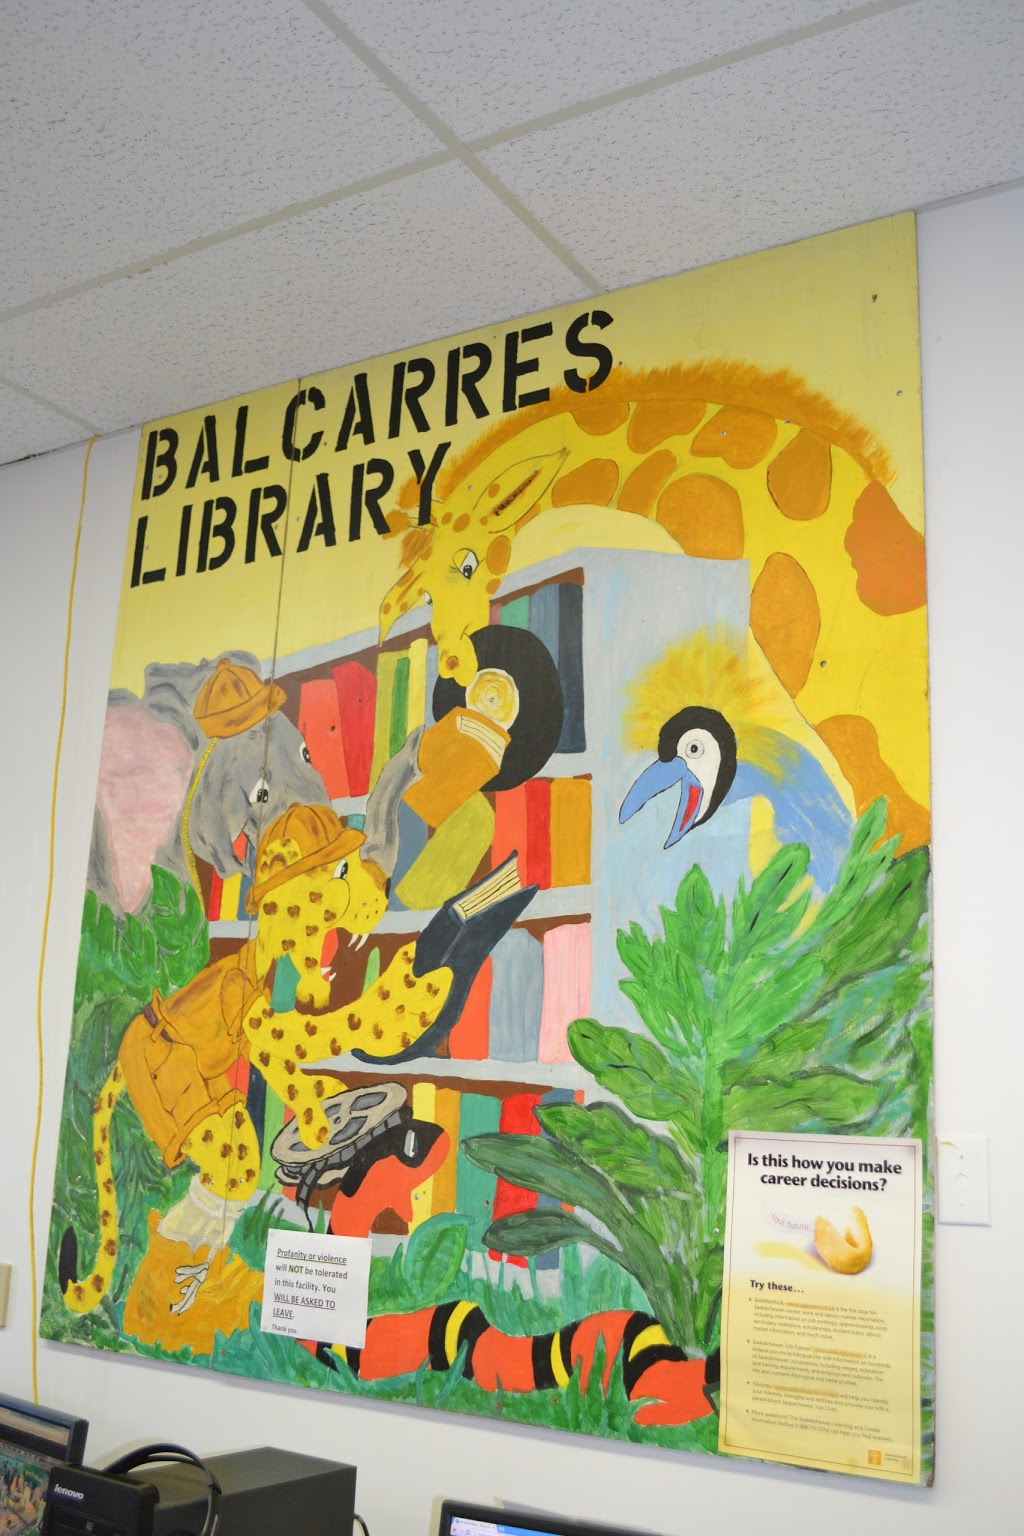 Balcarres Branch Library | library | 209 Main St, Balcarres, SK S0G 0C0, Canada | 3063342966 OR +1 306-334-2966